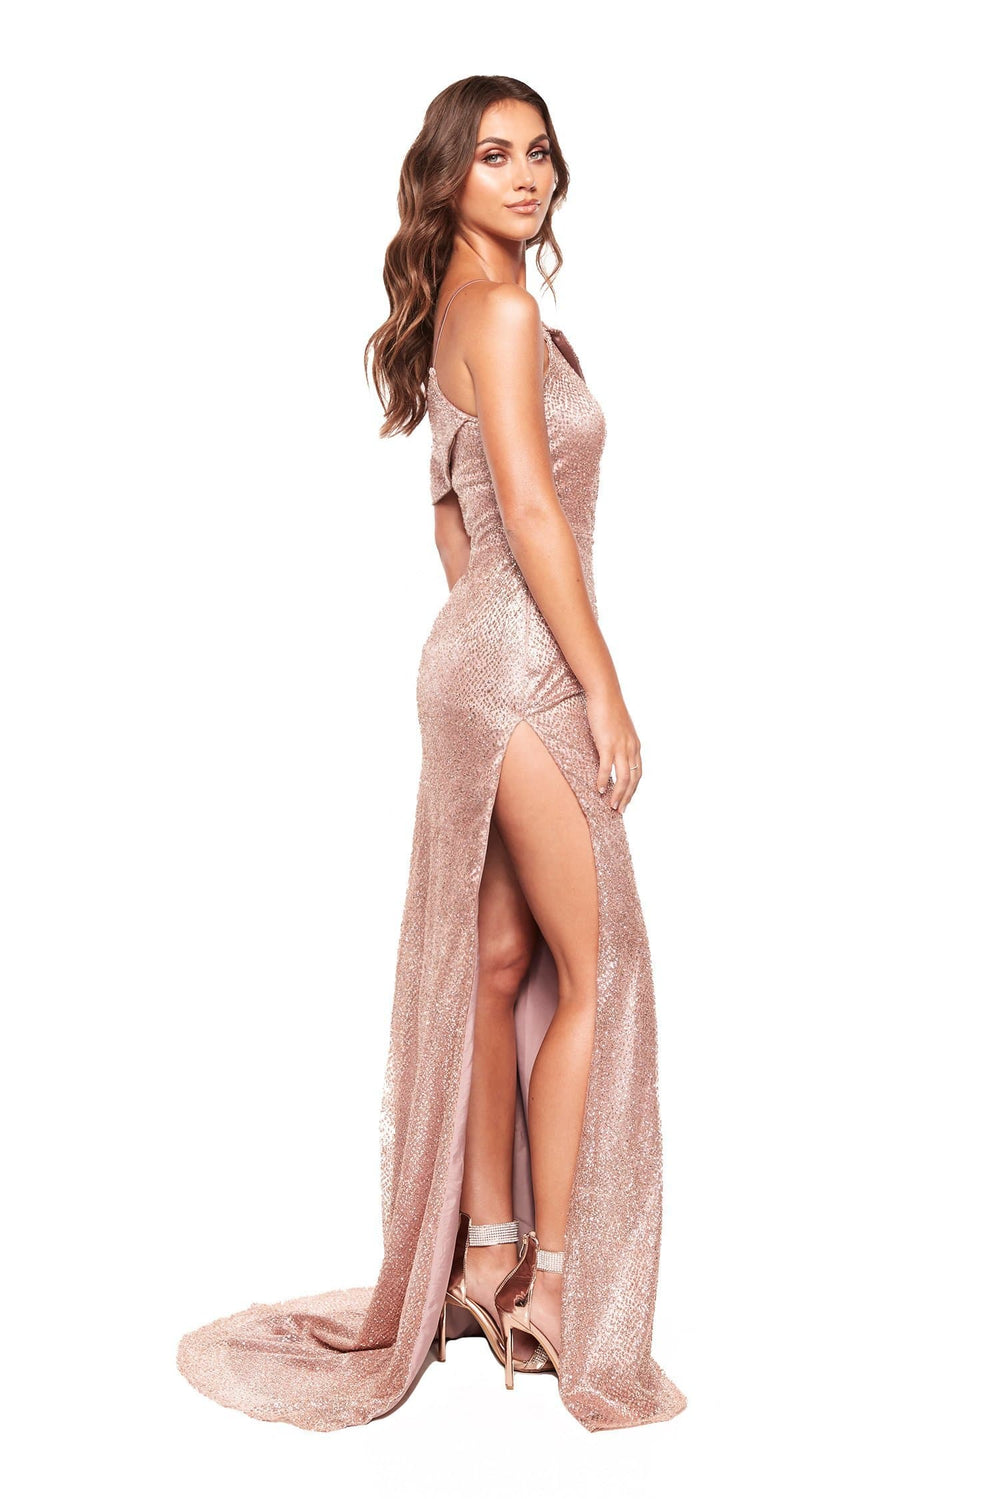 A&N Rita - One Shoulder Glitter Gown with Side Slit in Rose Gold